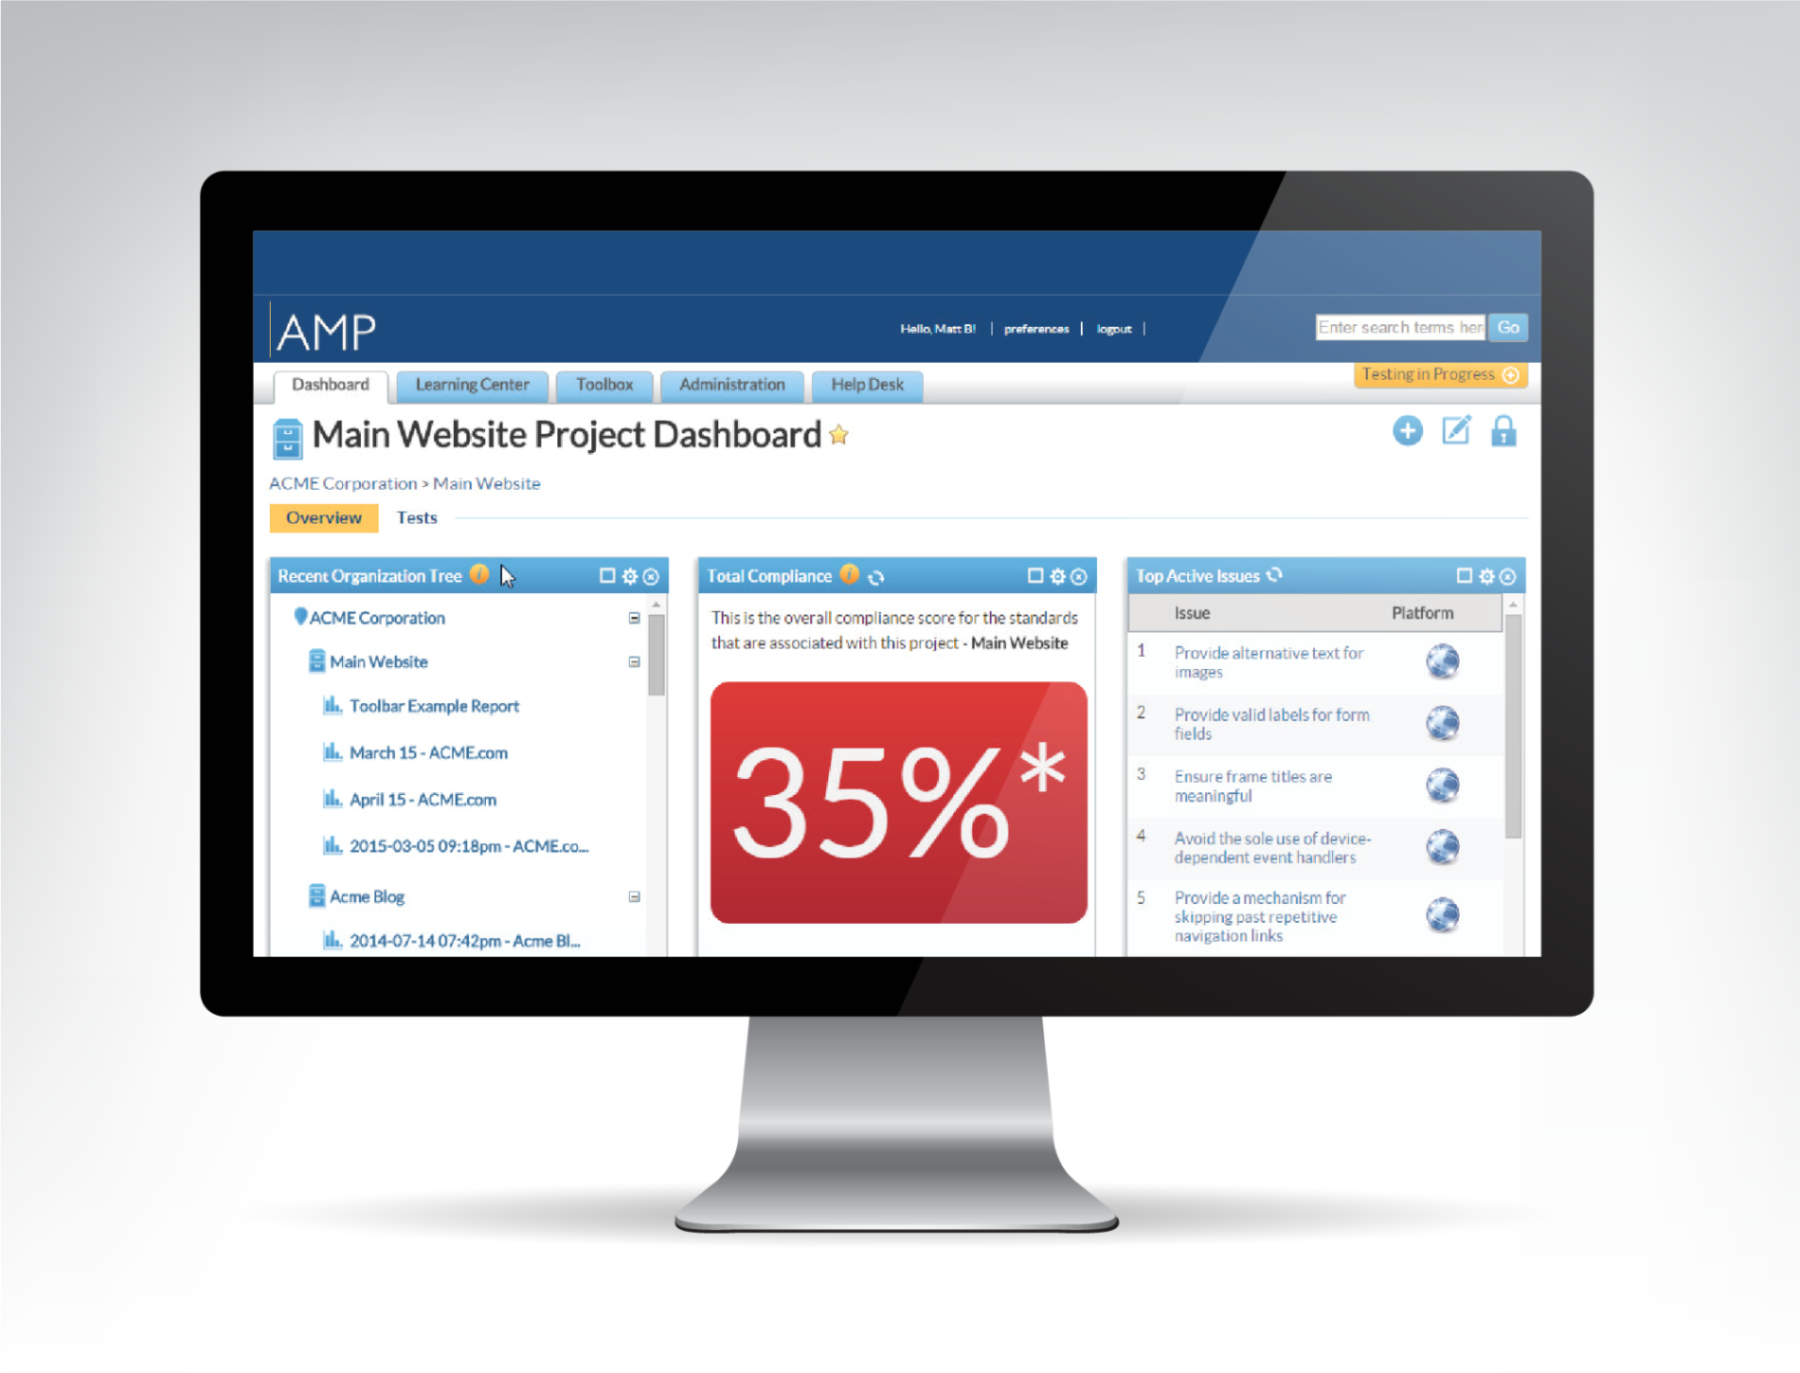 Sample AMP screenshot showing a total compliance score of 35% on a project dashboard.